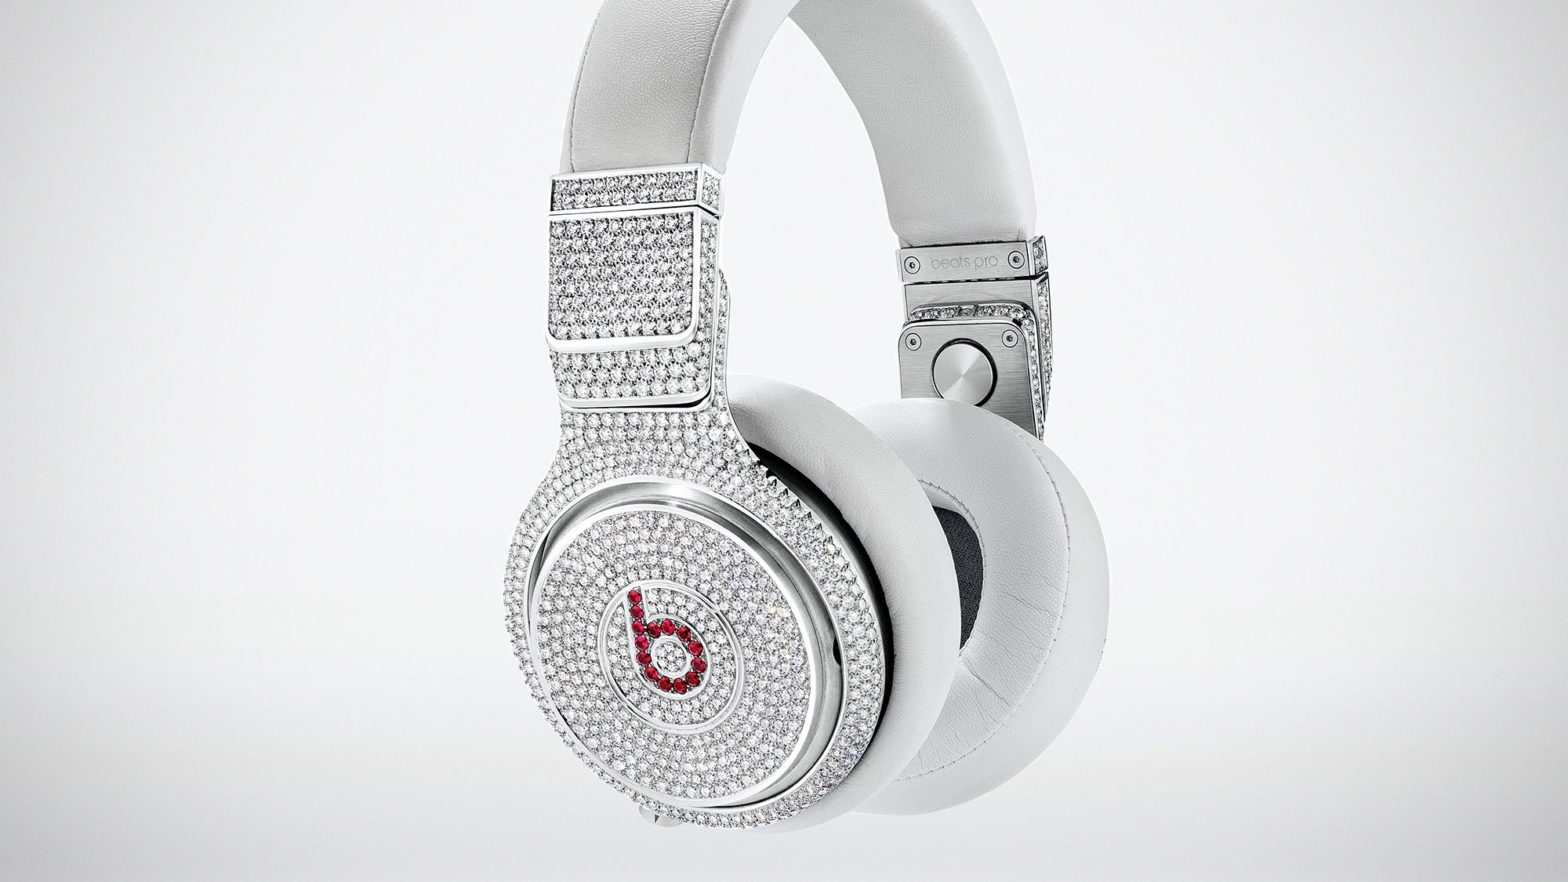 Diamond and Ruby Beats Pro Headphones